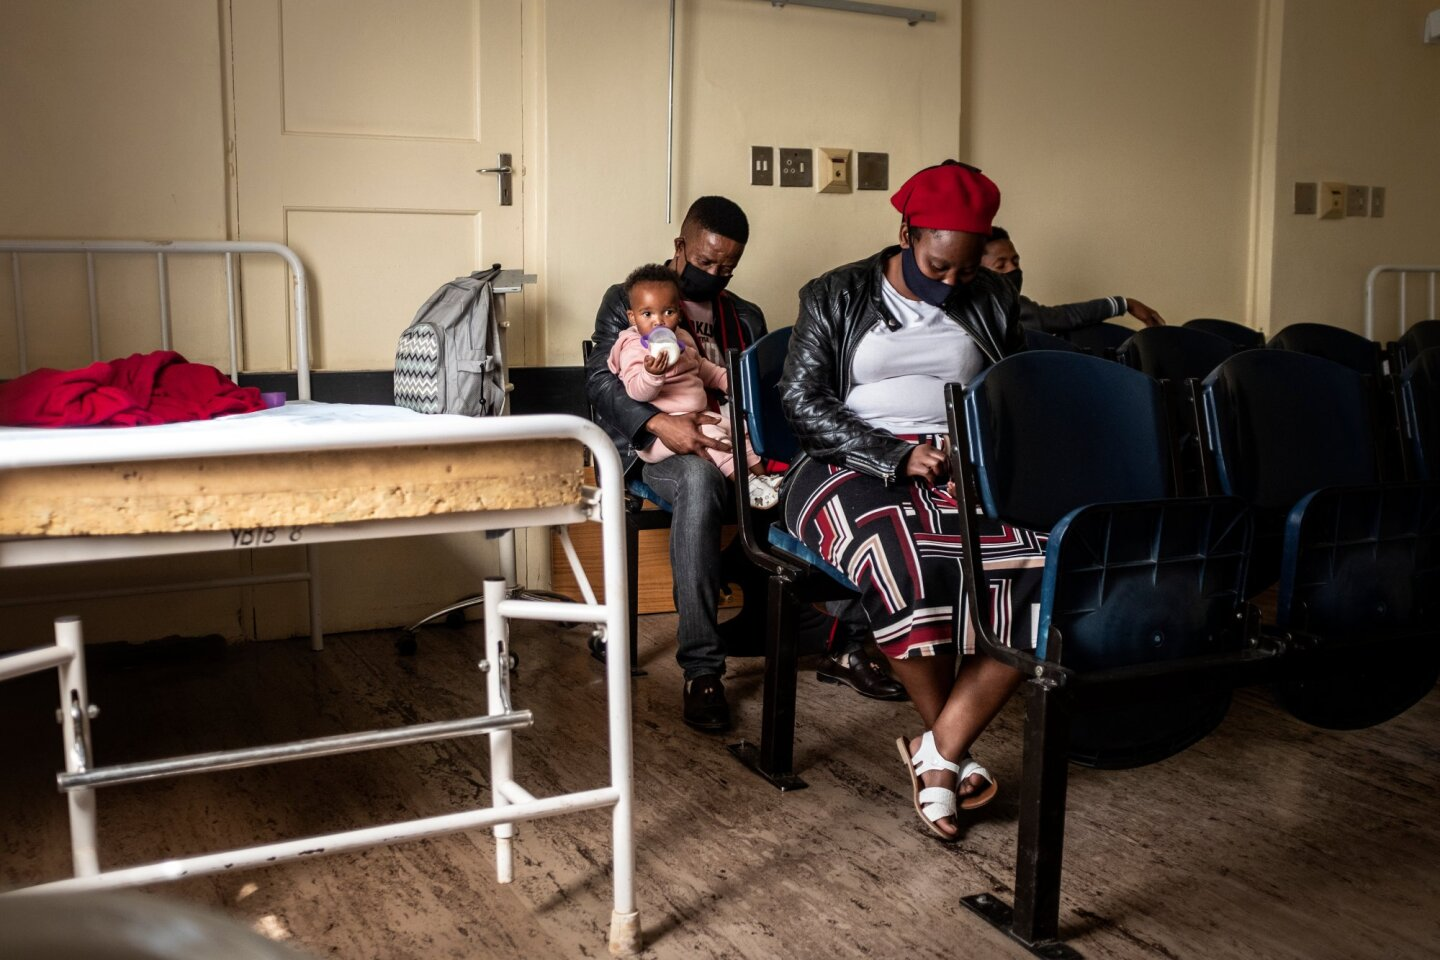 Patients await assistance at the Reivilo Health Centre in Reivilo on September 4, 2020. | Thomson Reuters Foundation/Gulshan Khan